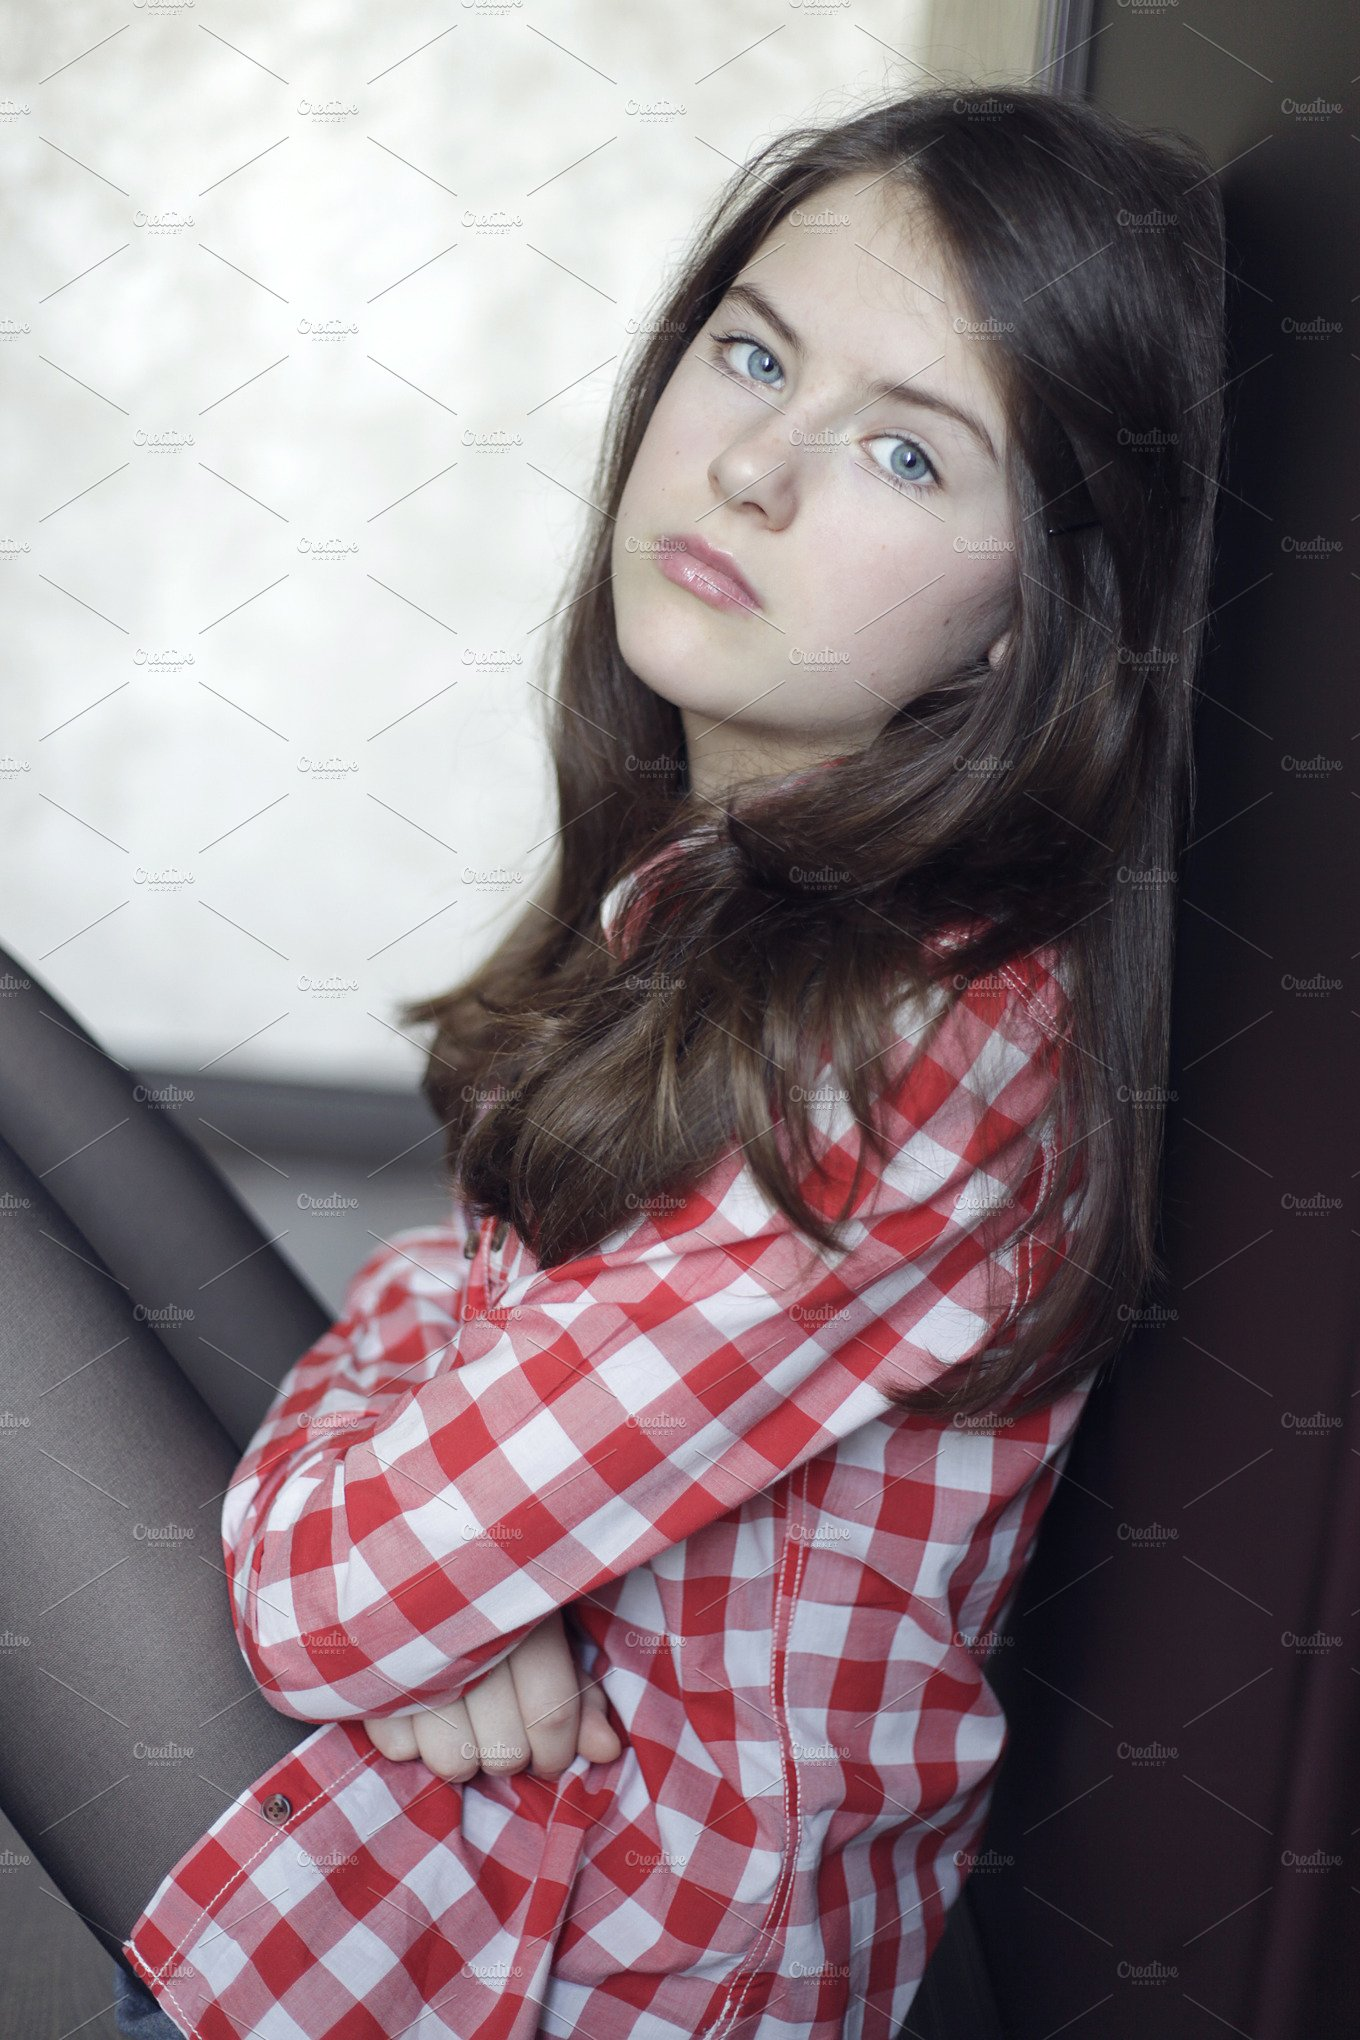 Teenager girl   High-Quality People Images ~ Creative Market